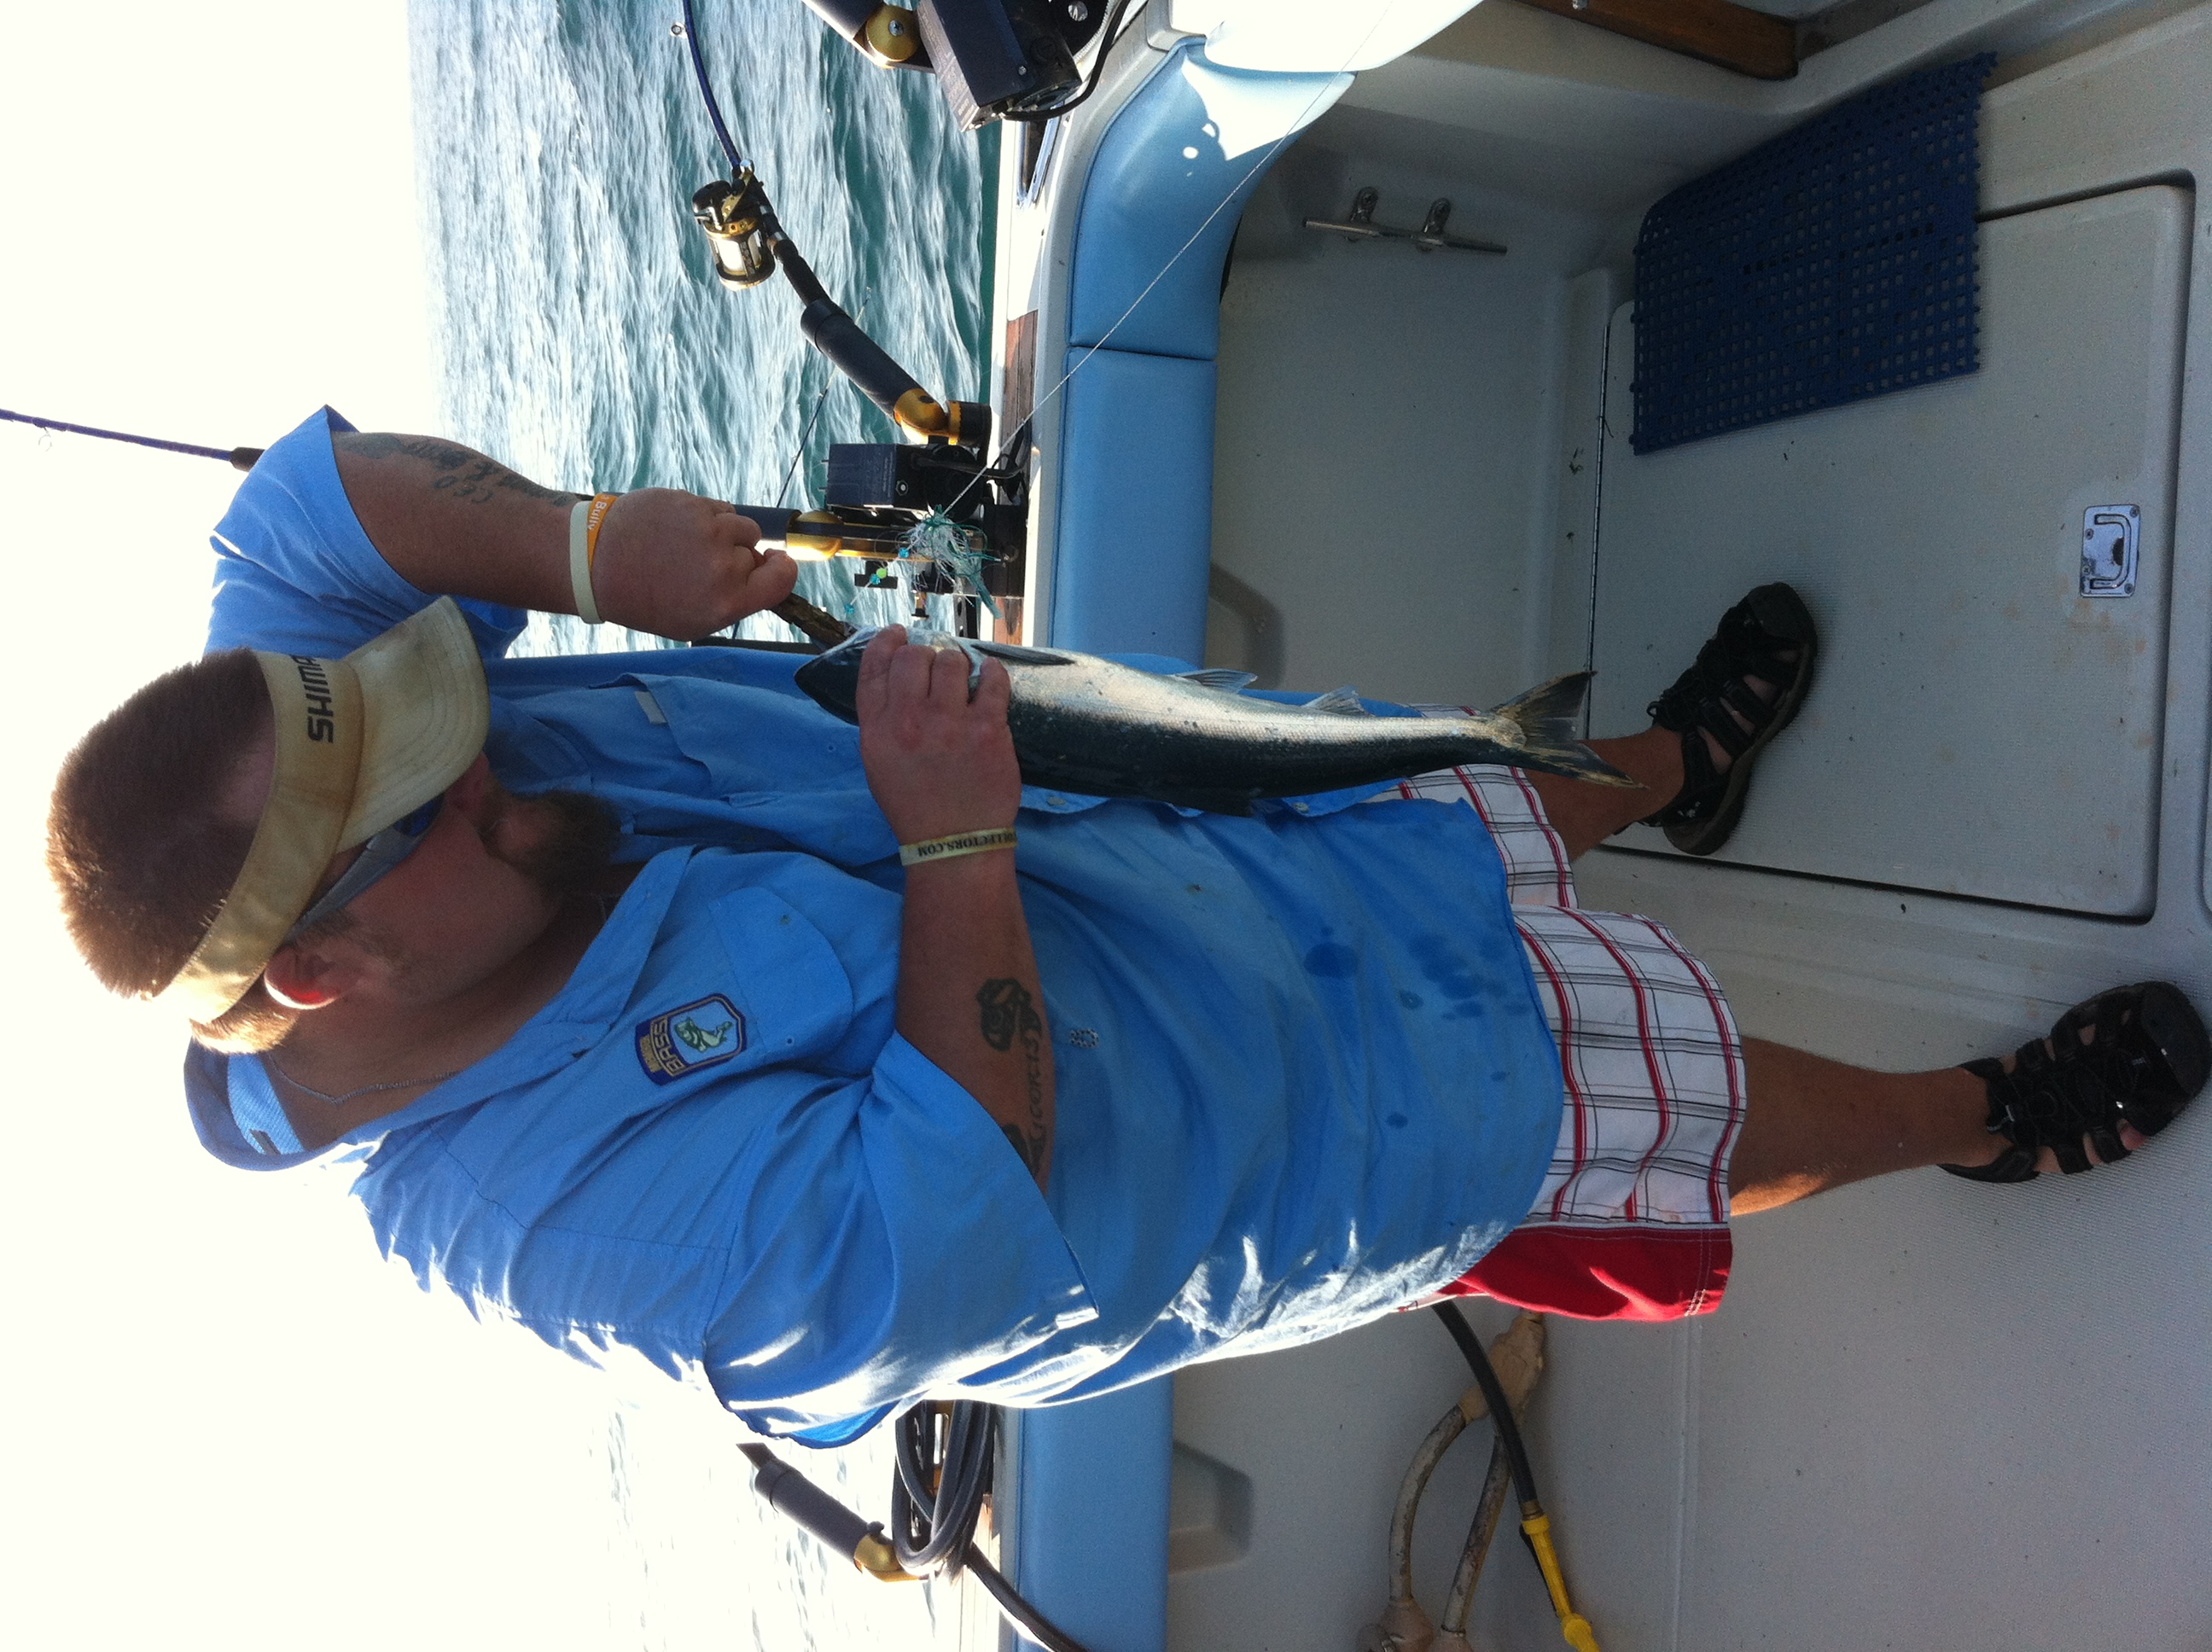 UnrulyCharterFishing_LakeMichiganSalmonFishing.21.jpg